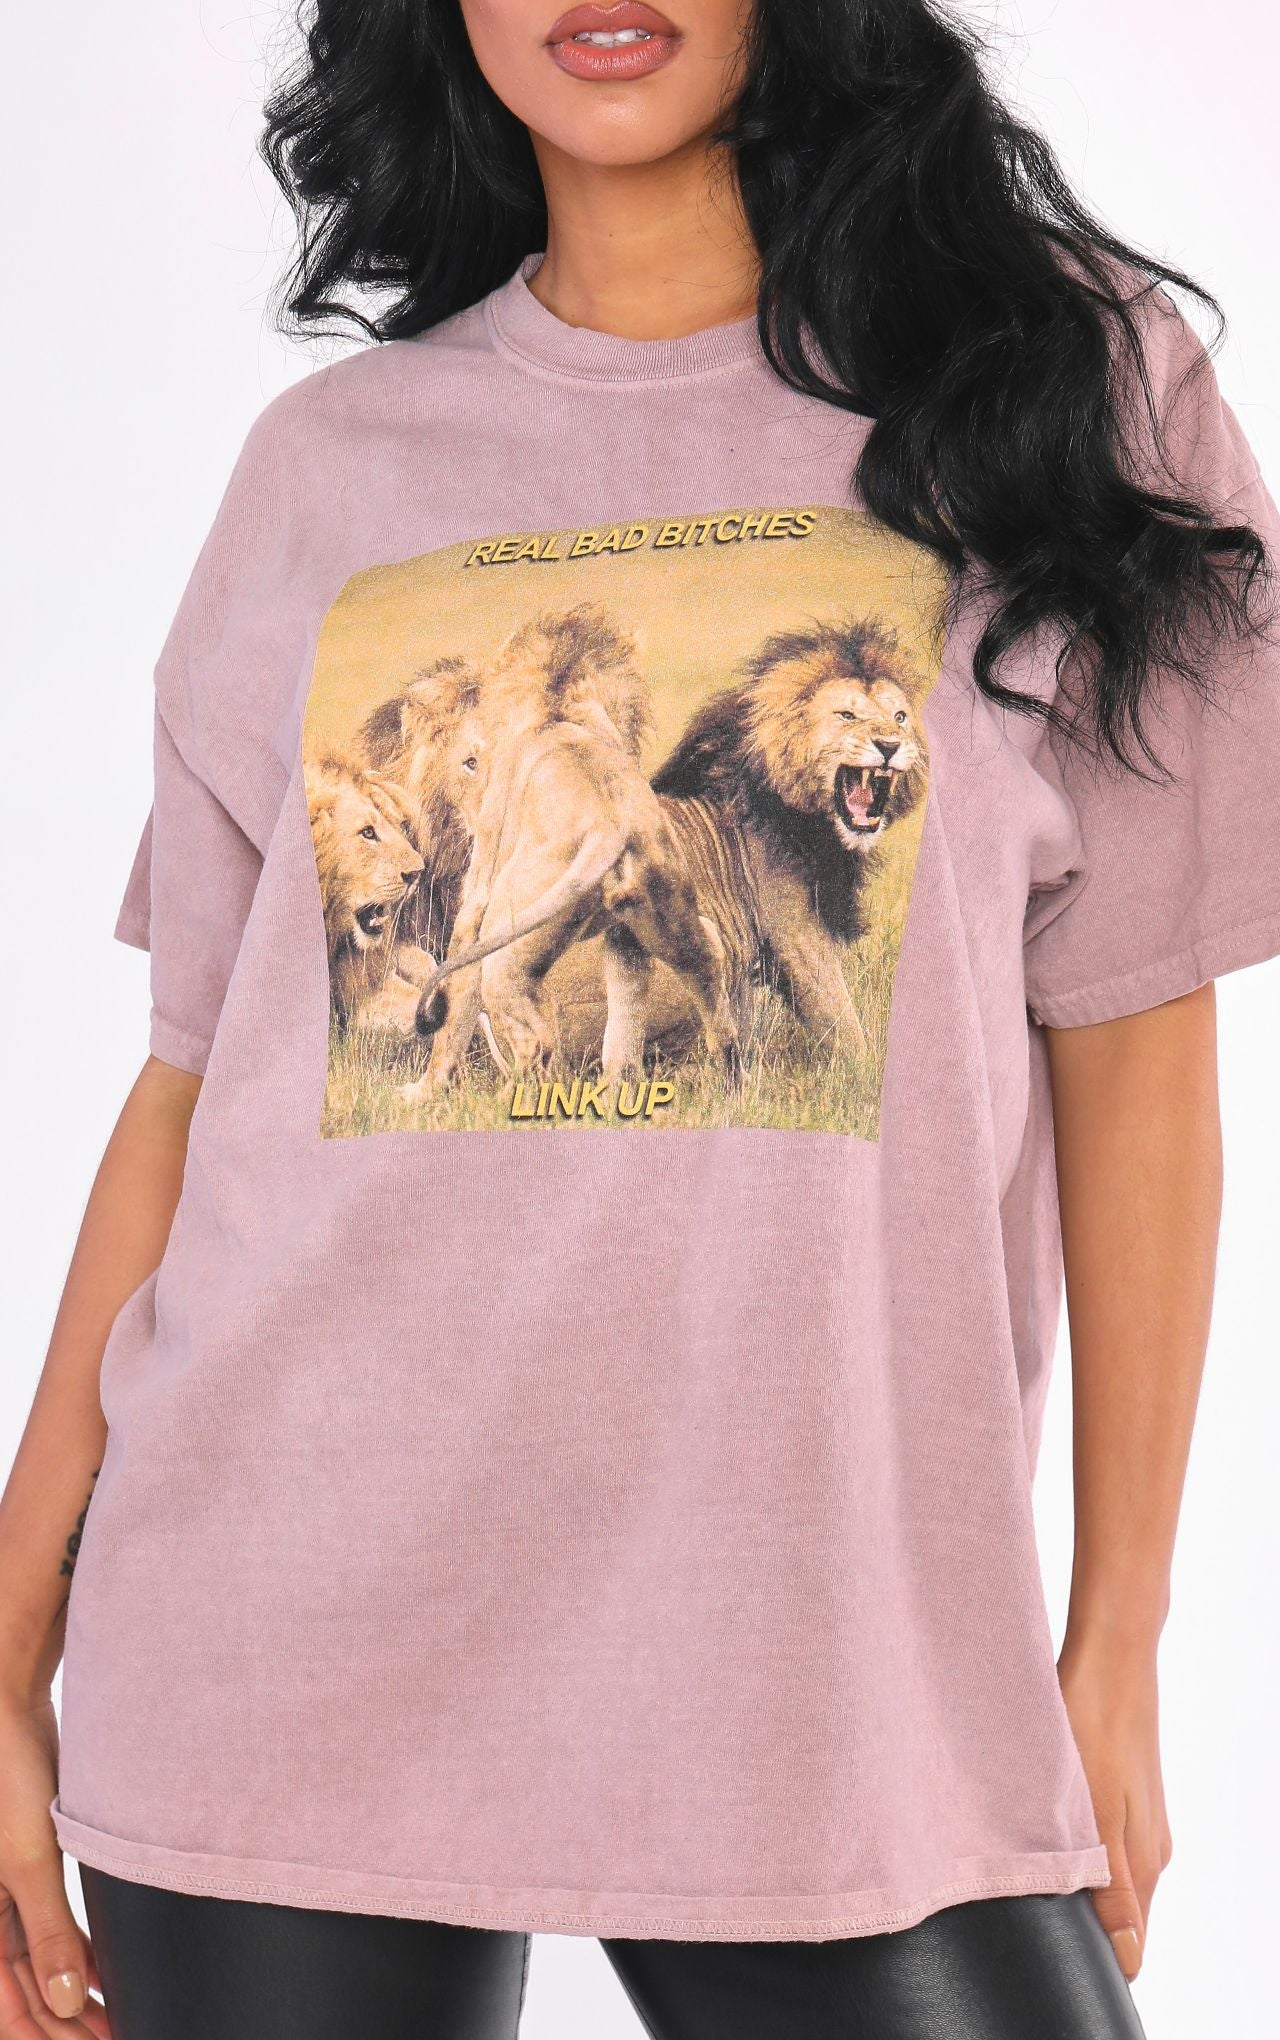 Real Bad Bxtches Link Up Lion Pack Camel T Shirt